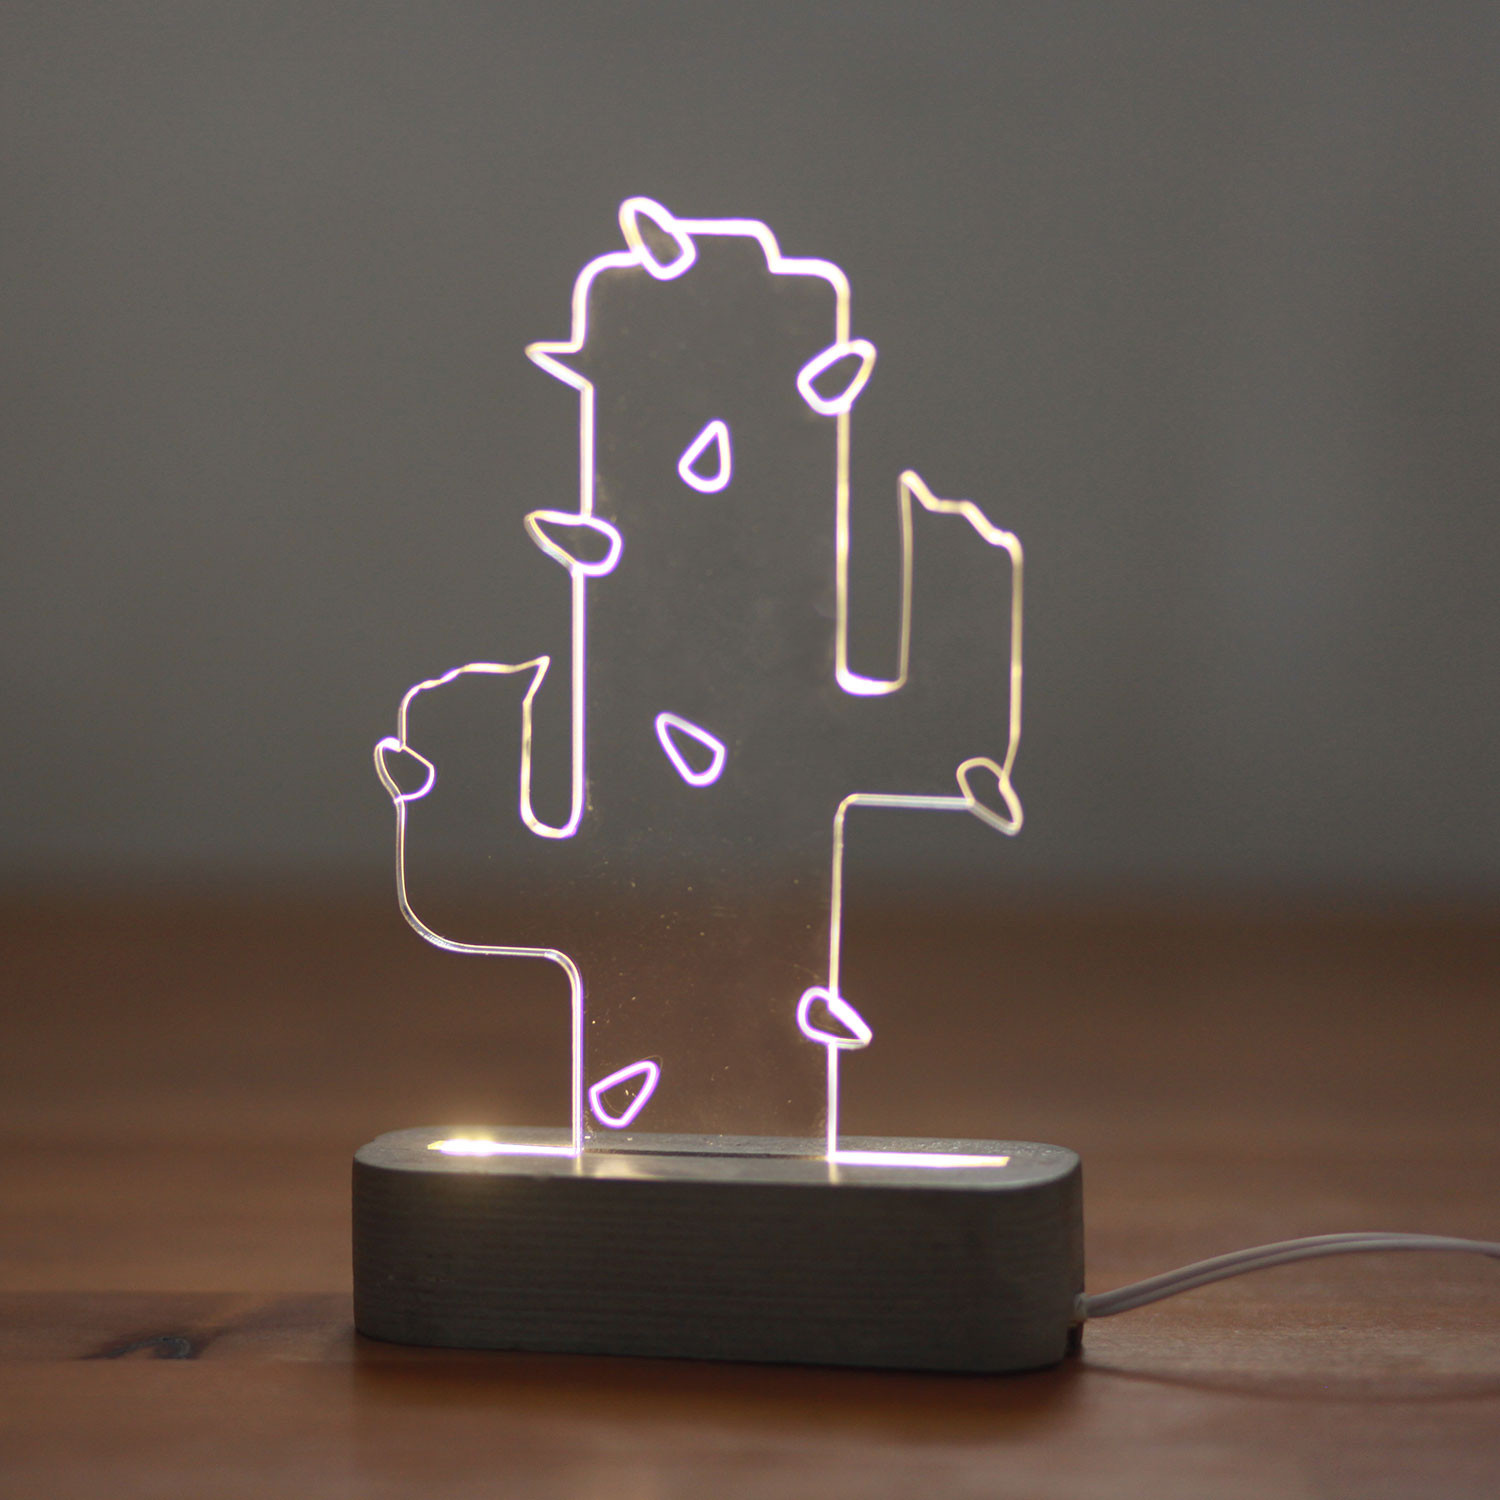 Cactus Verlichting Cactus Lamp Bring Out A Natural Look In Your Home